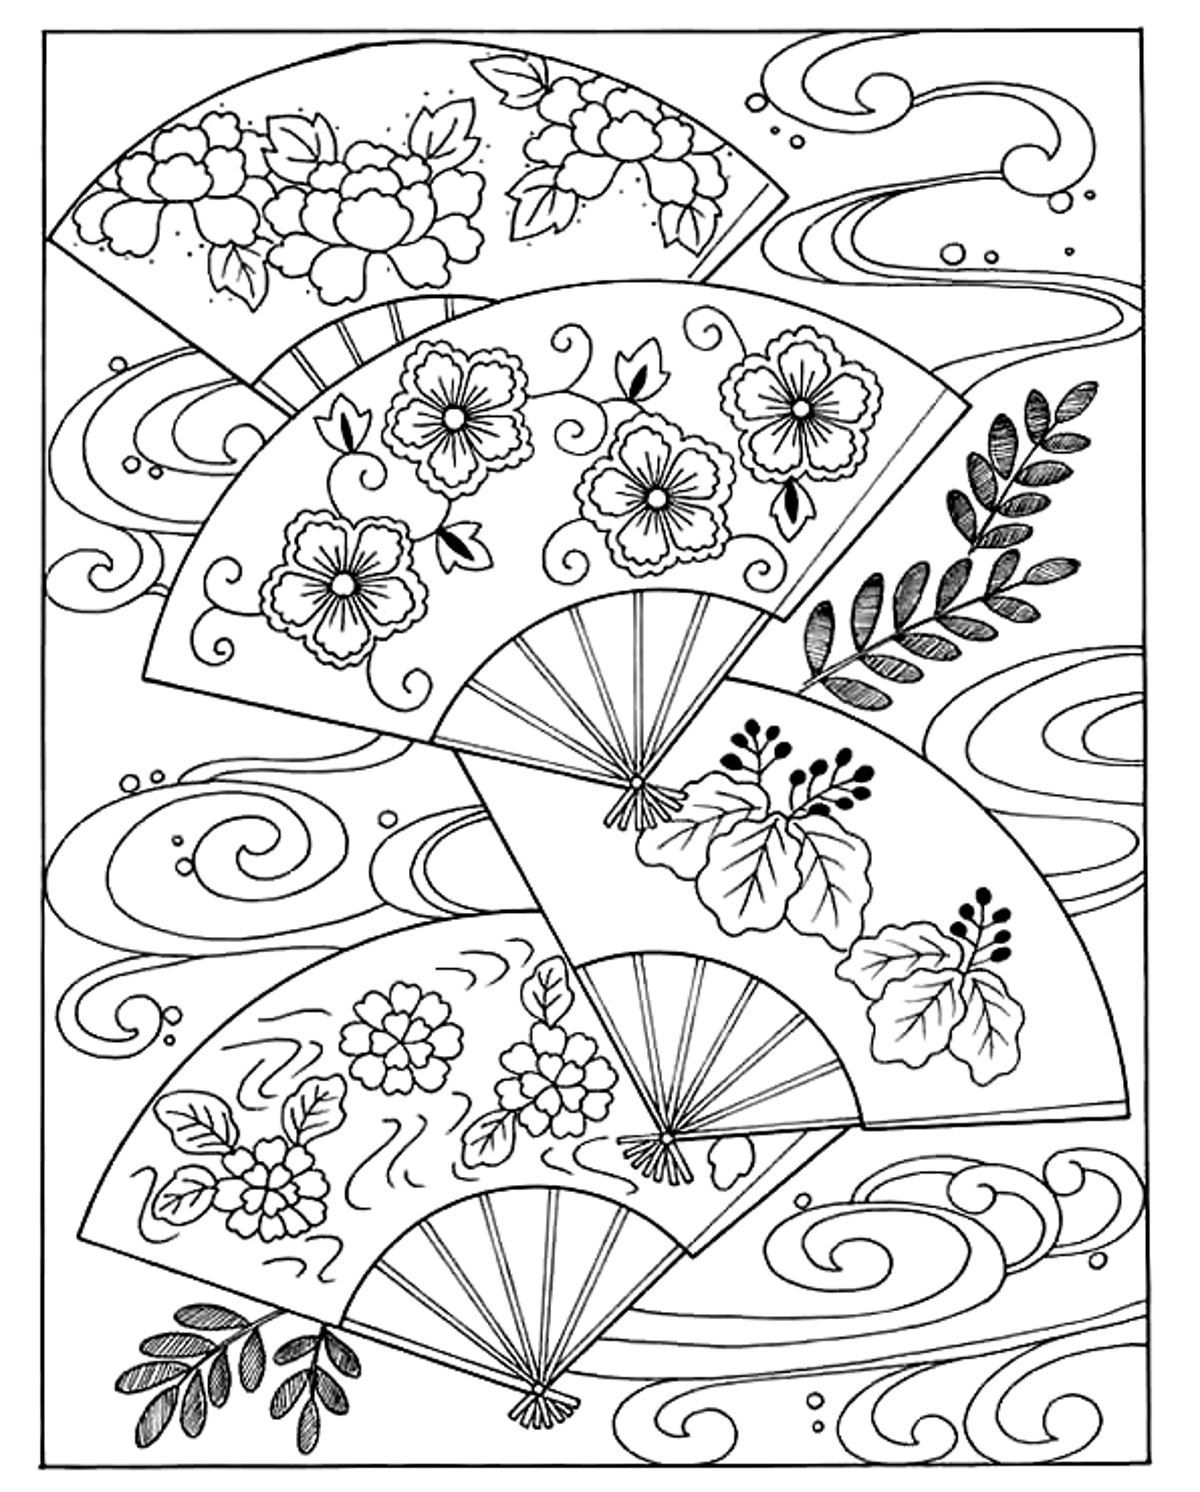 coloring pages japan - photo#23